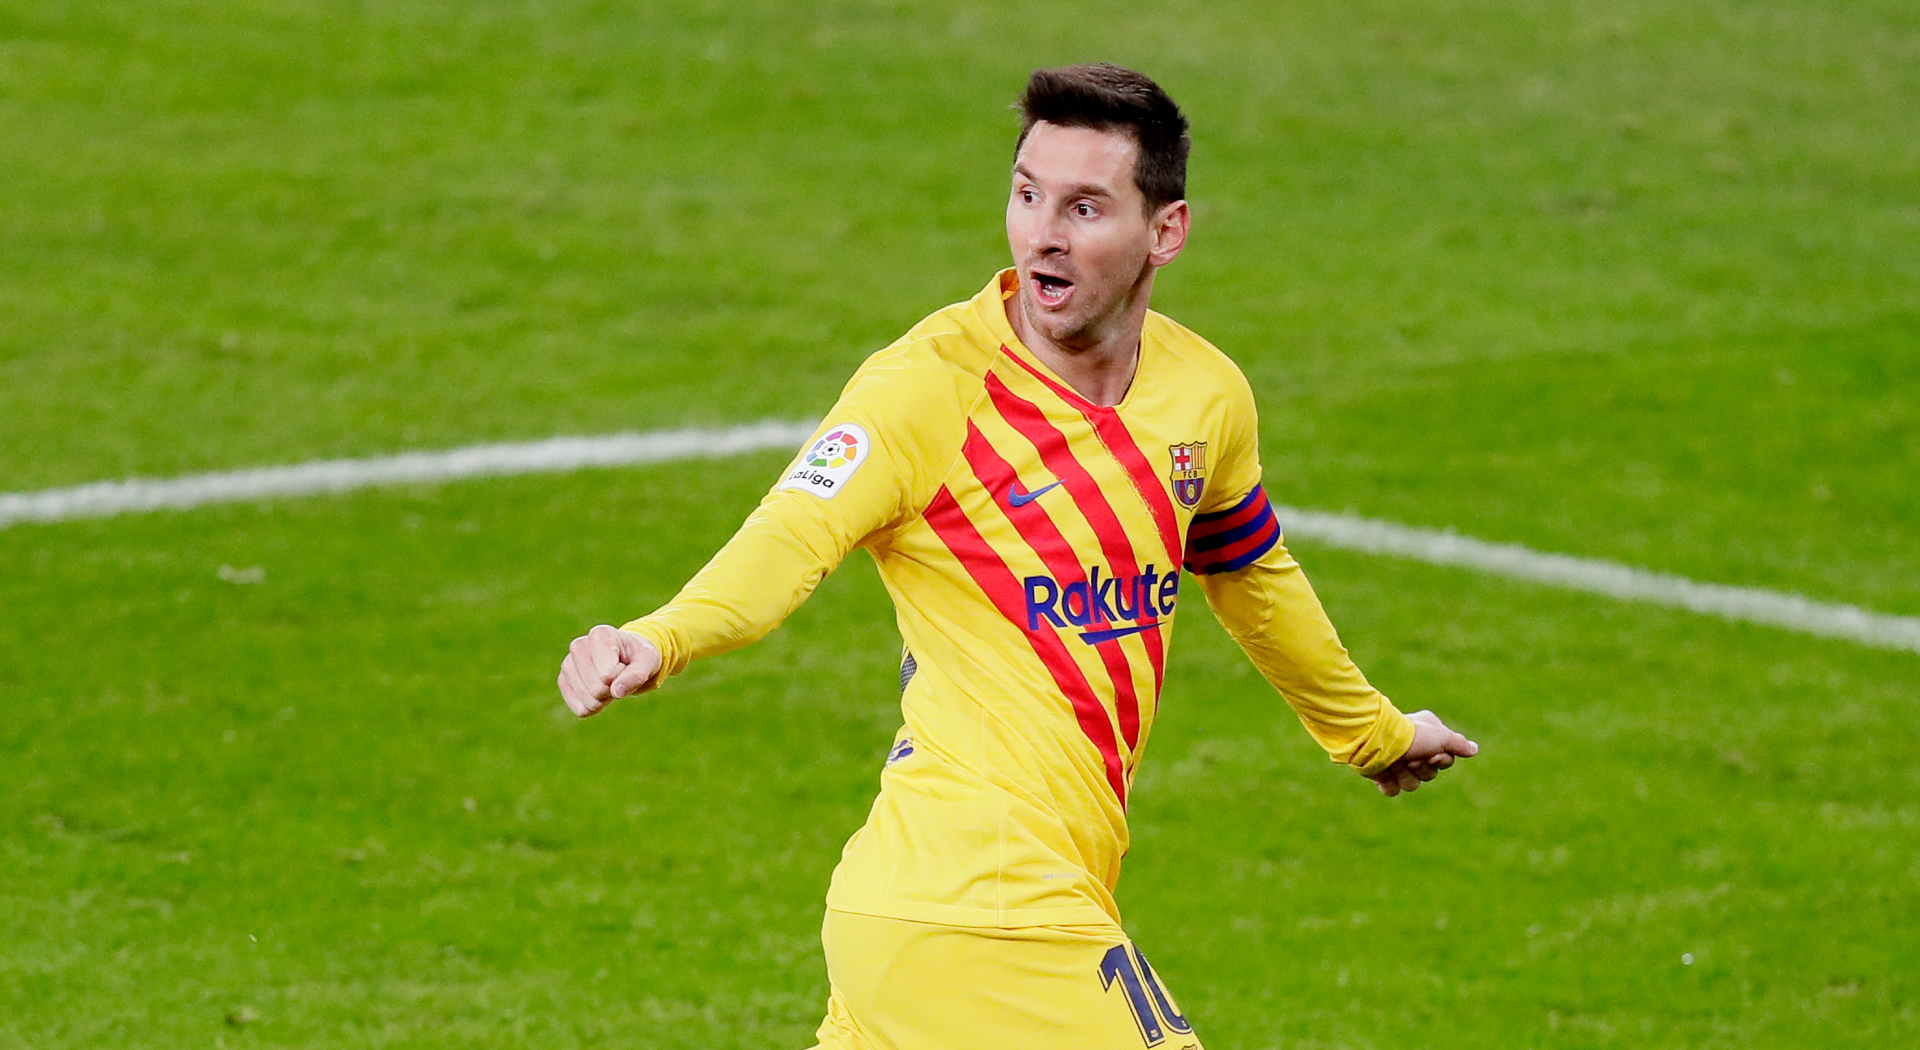 Messi fit for Supercopa as Koeman looks to consolidate Barca improvement with a trophy